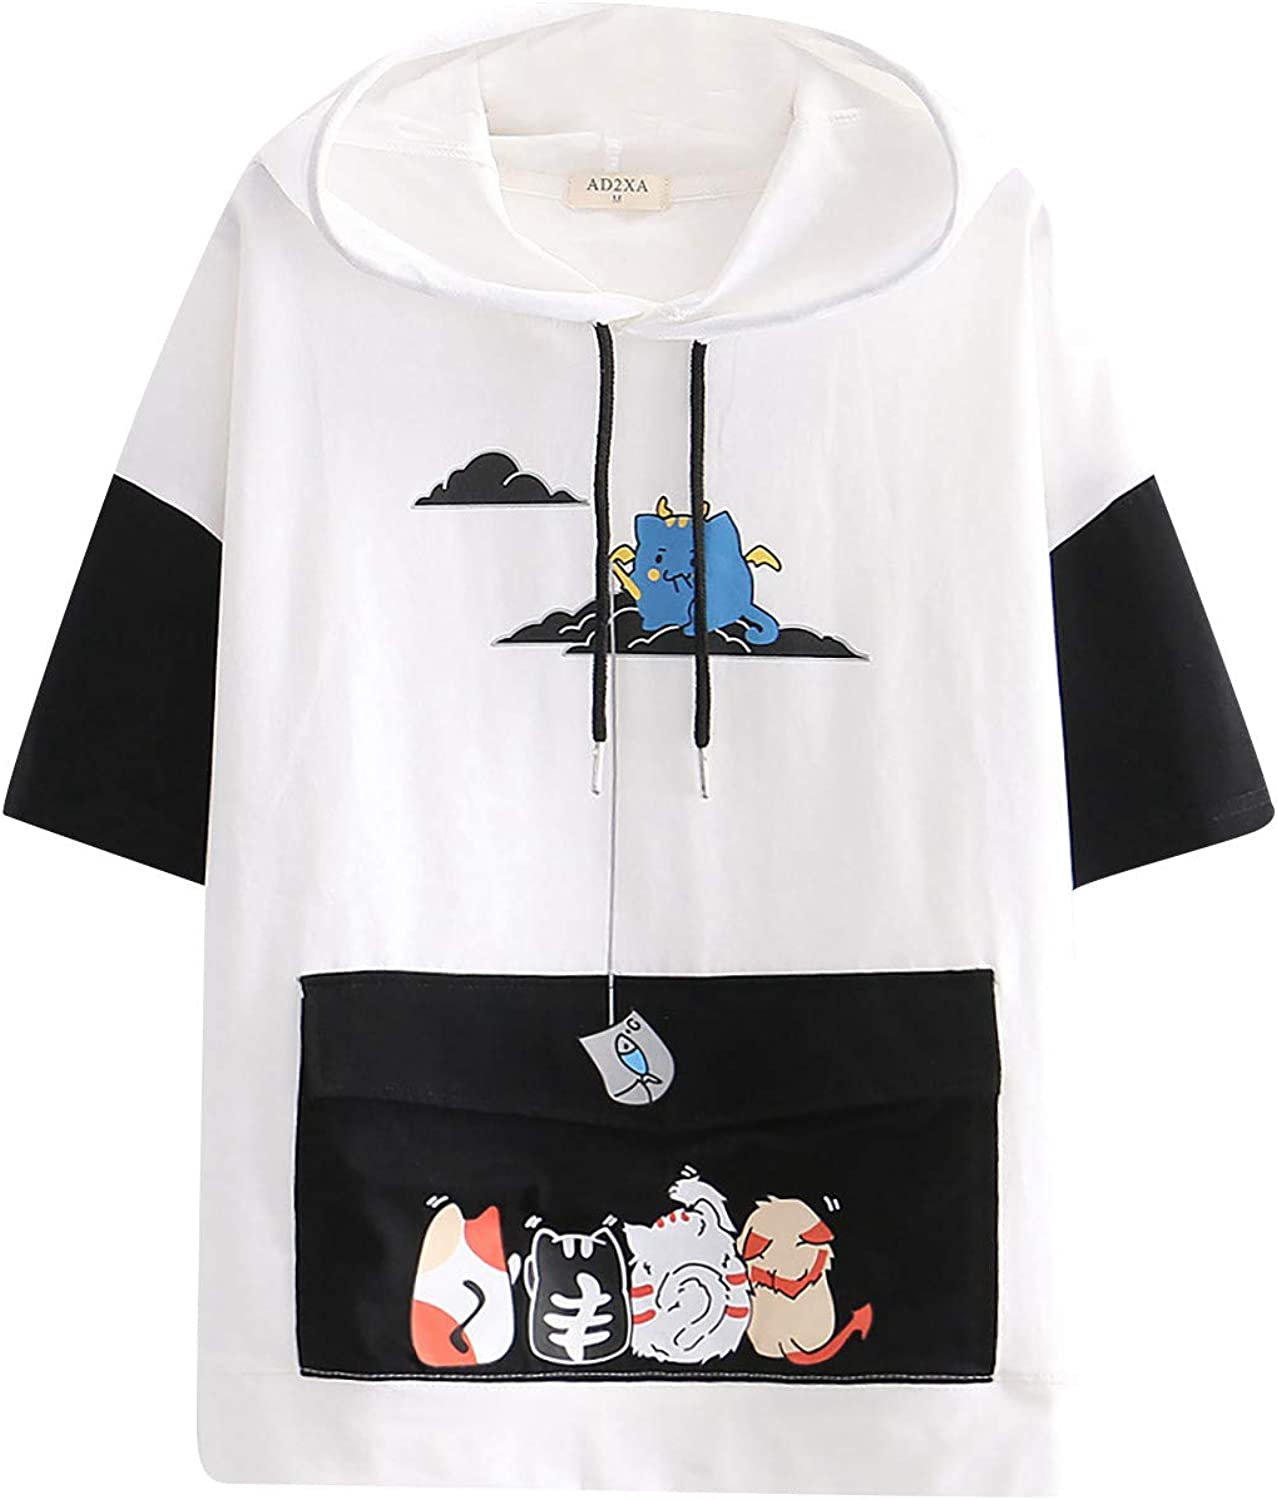 Womens Tops and Blouses,Women T-Shirt Short Sleeve Cute Cat Ear Drawstring Hooded Sweatshirt Graphic Blouse Tee Pullover